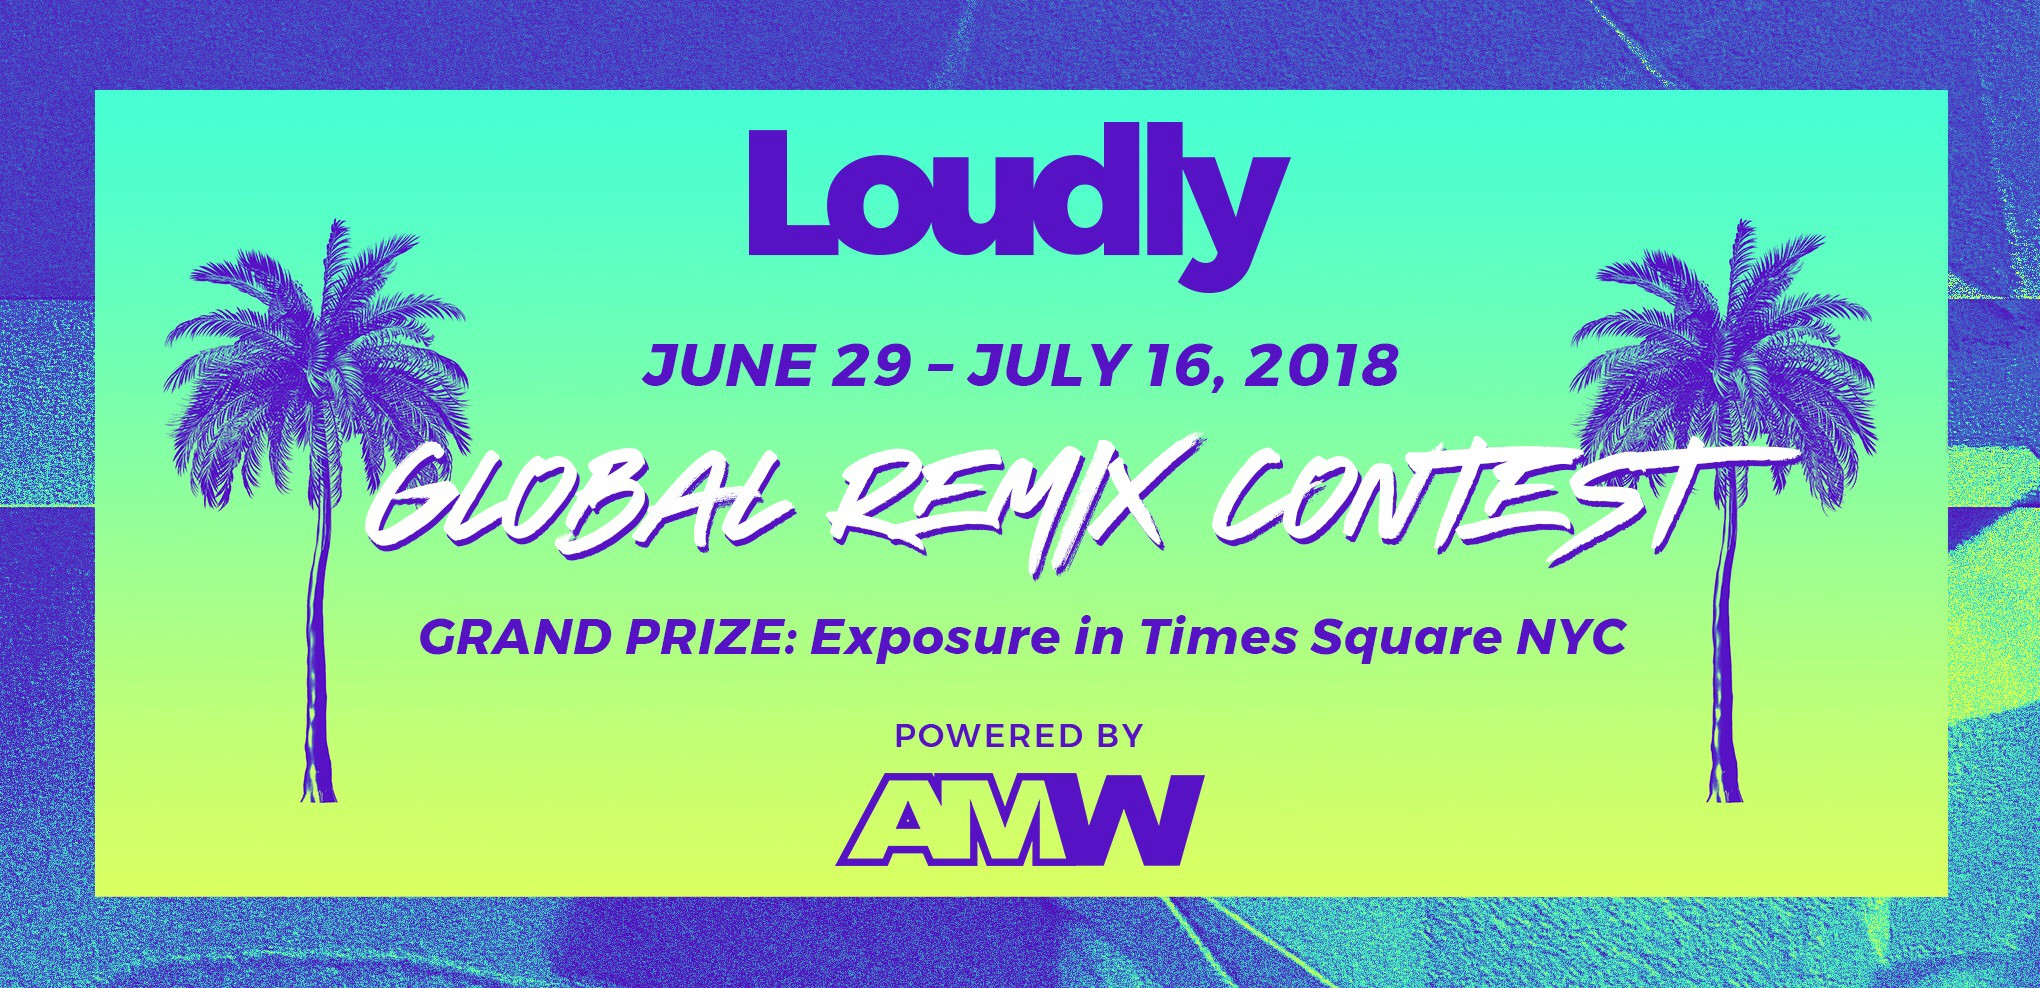 JAM to Kick-Off Launch of New Social Music App 'LOUDLY' with